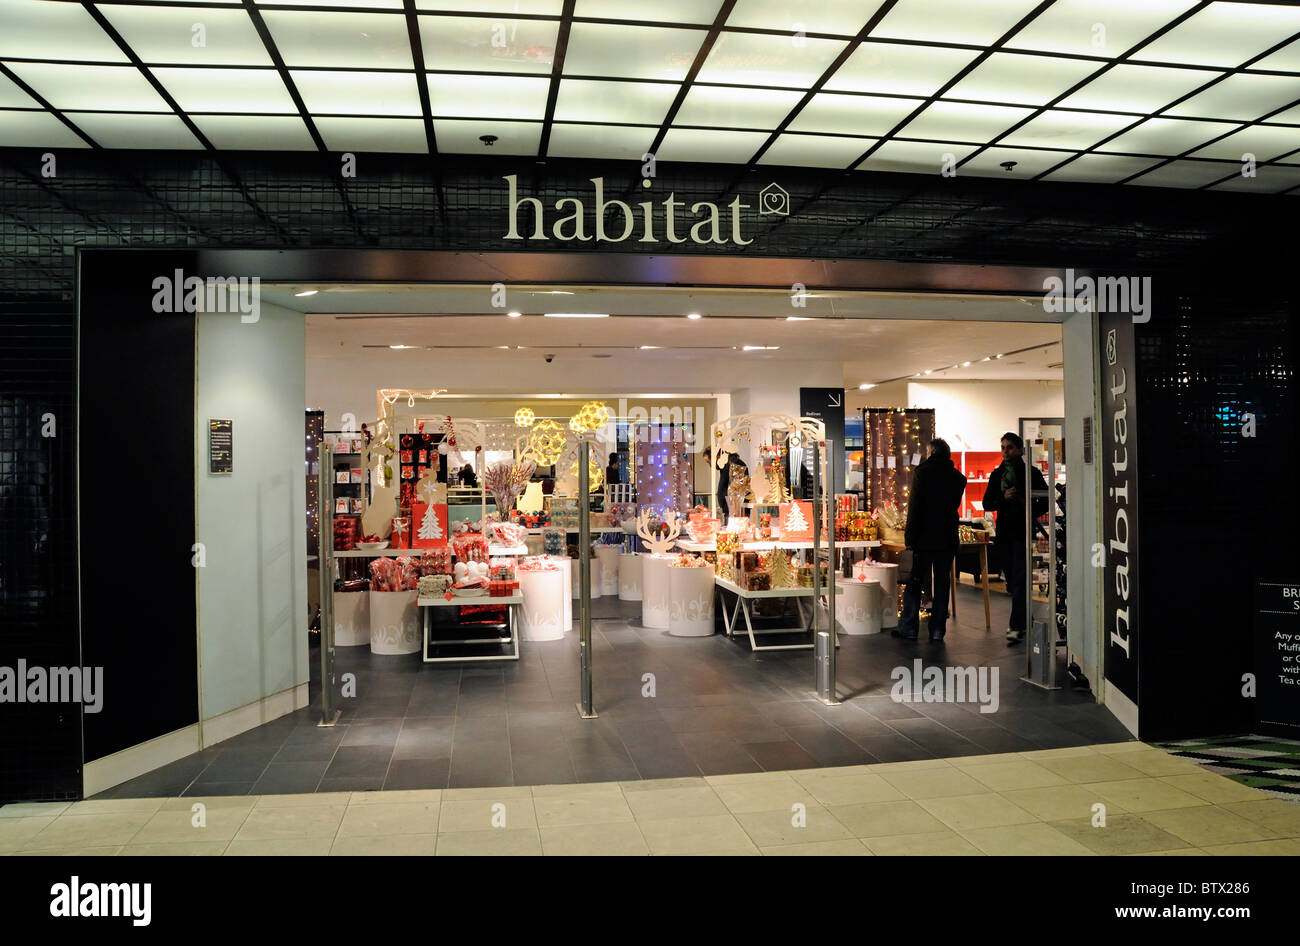 Entrance to habitat store in tottenham court road with for Habitat outlet